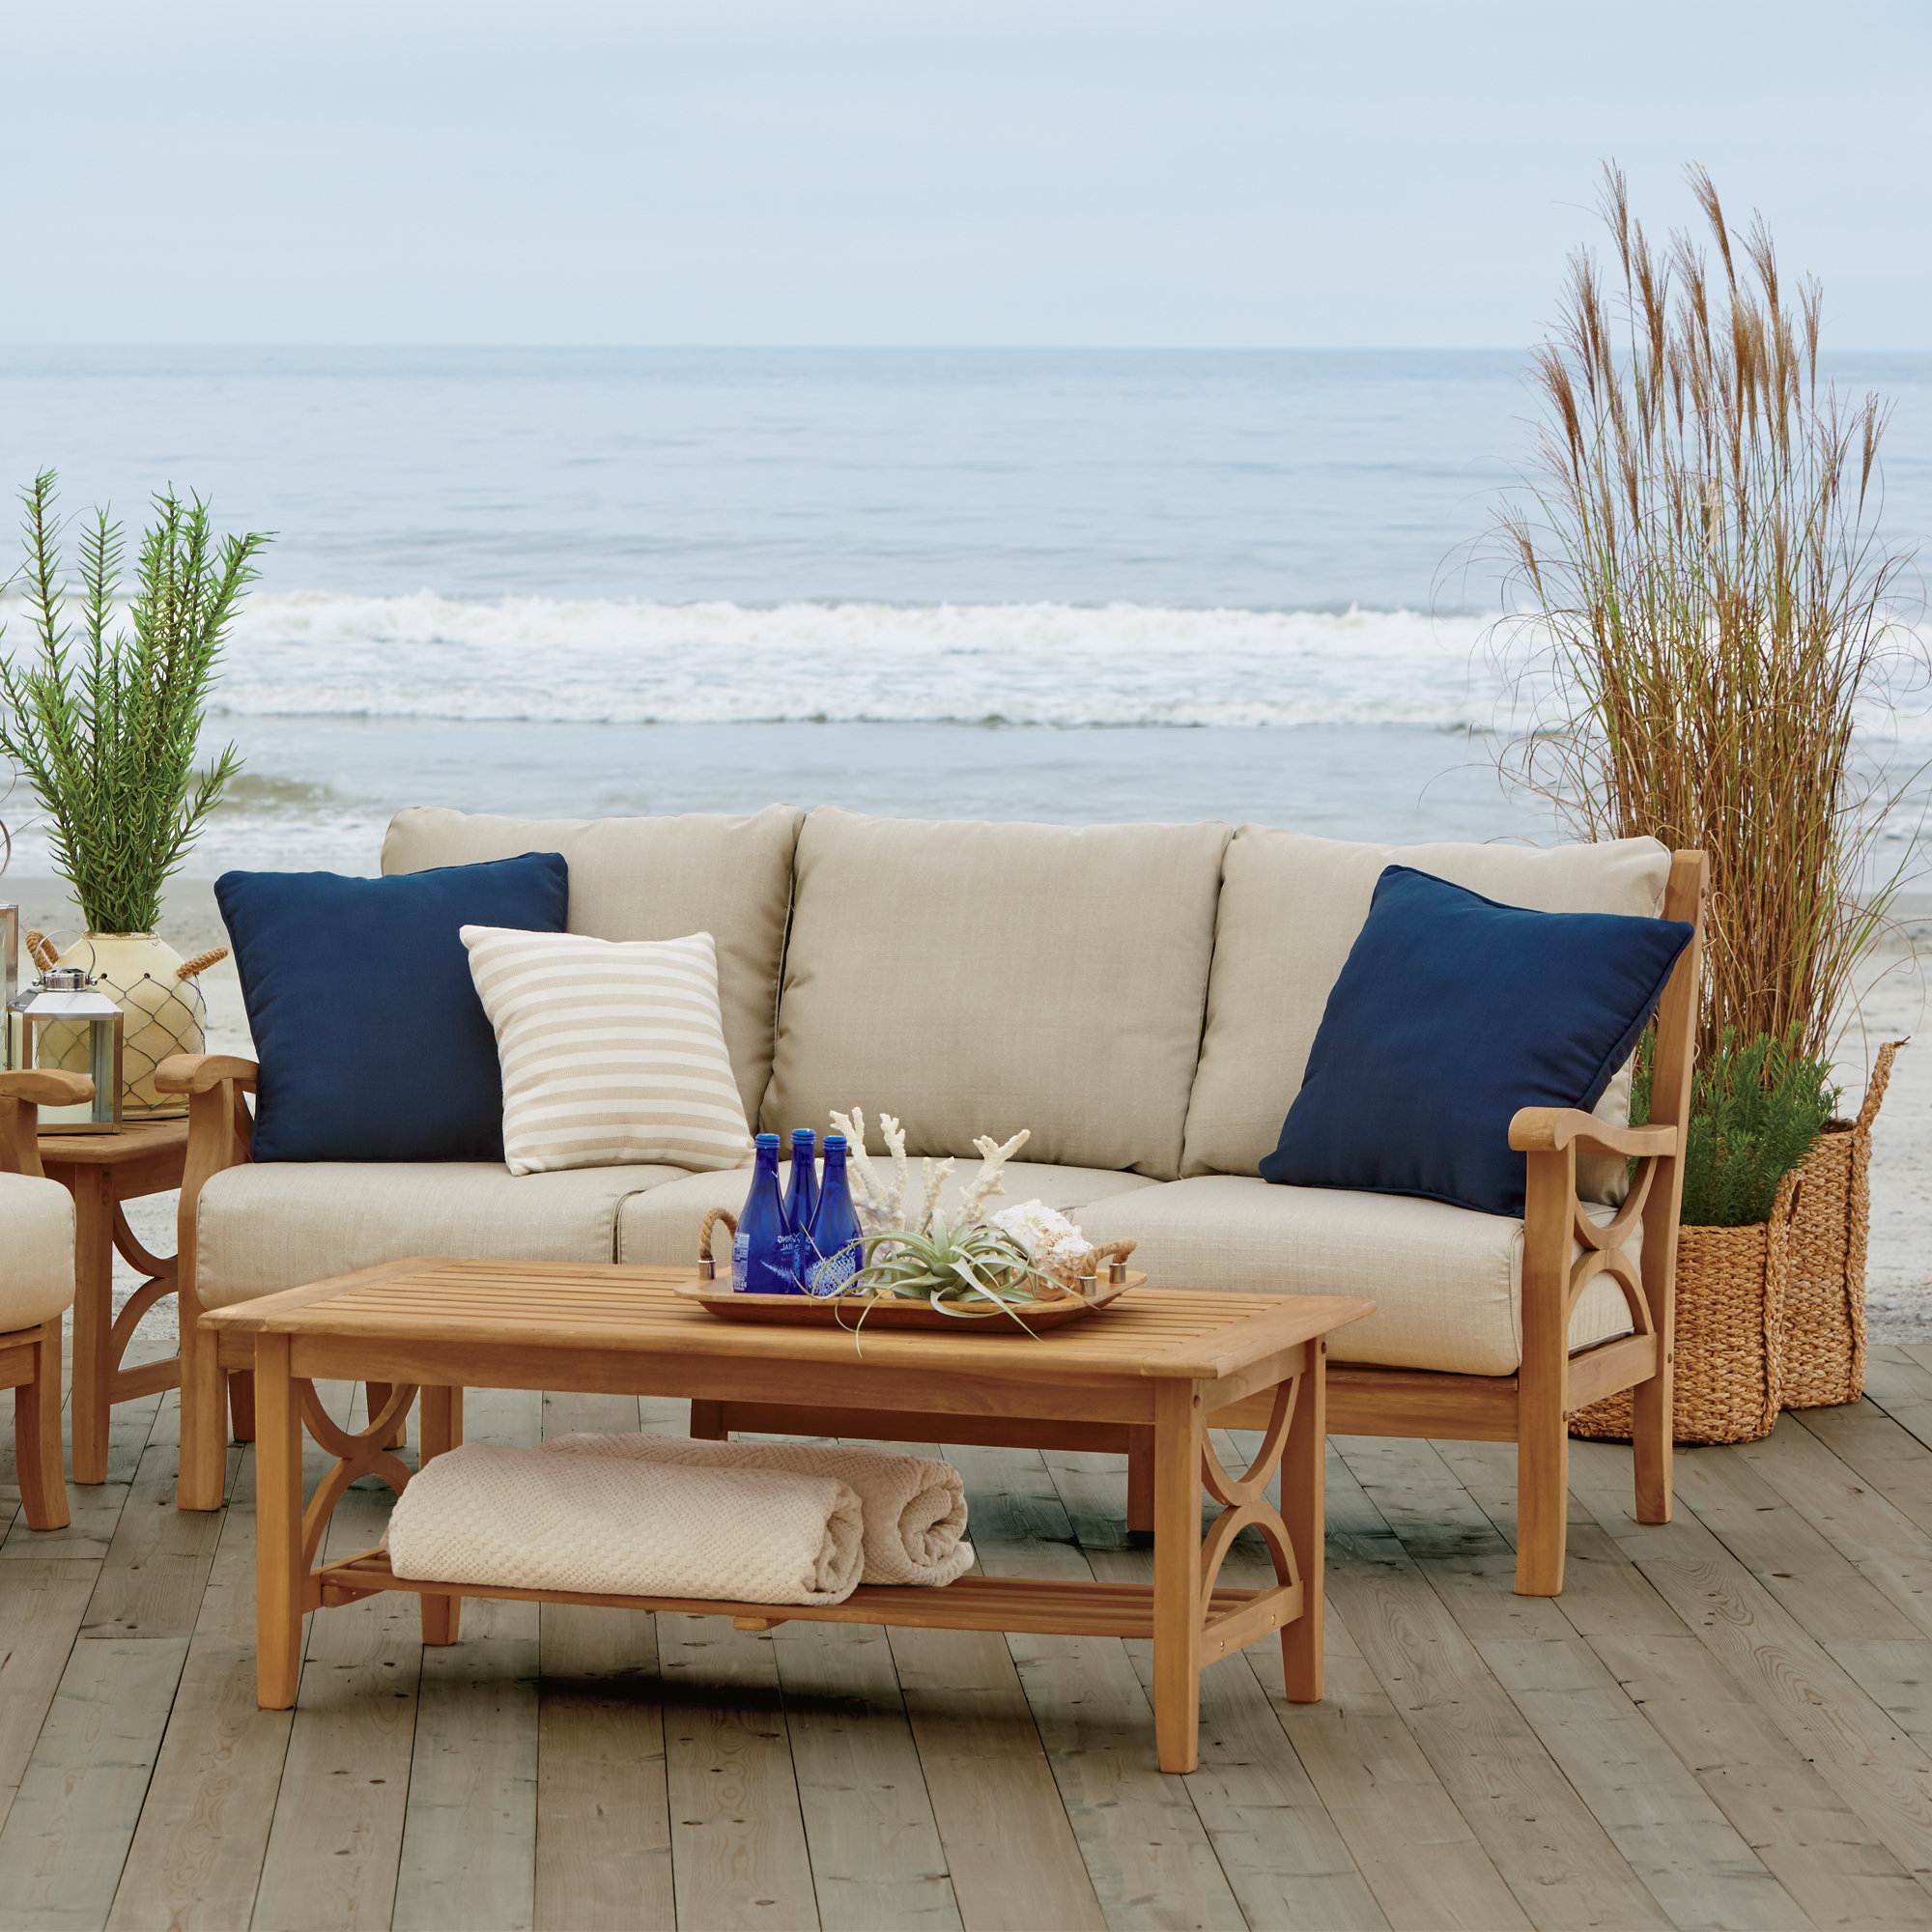 Brunswick Teak Patio Sofa With Cushions For Best And Newest Lakeland Teak Loveseats With Cushions (View 5 of 20)